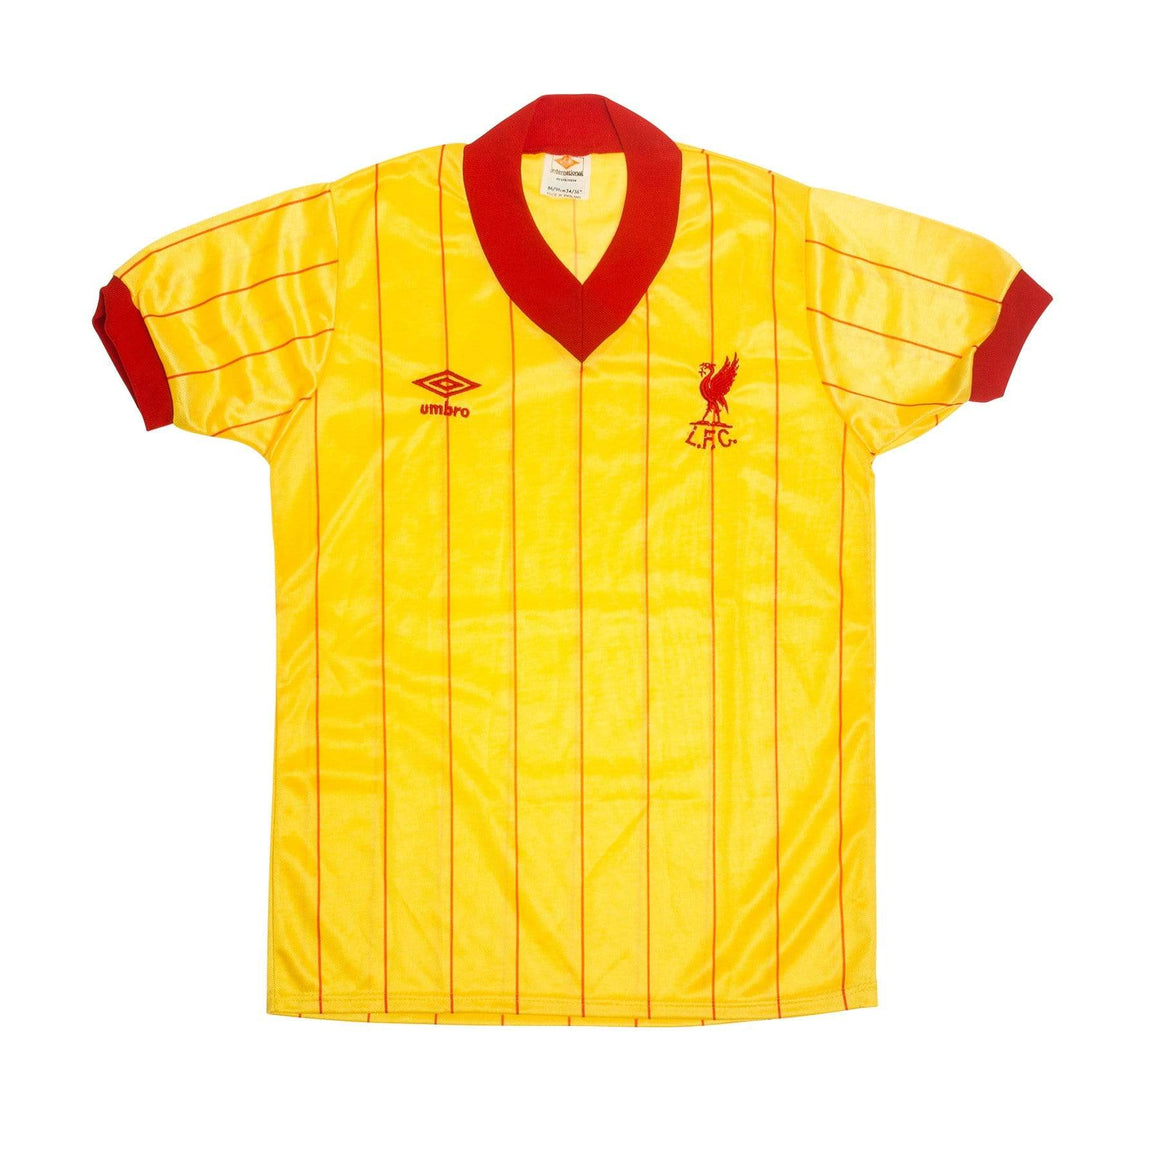 1981-84 Liverpool away shirt S Excellent - Football Shirt Collective